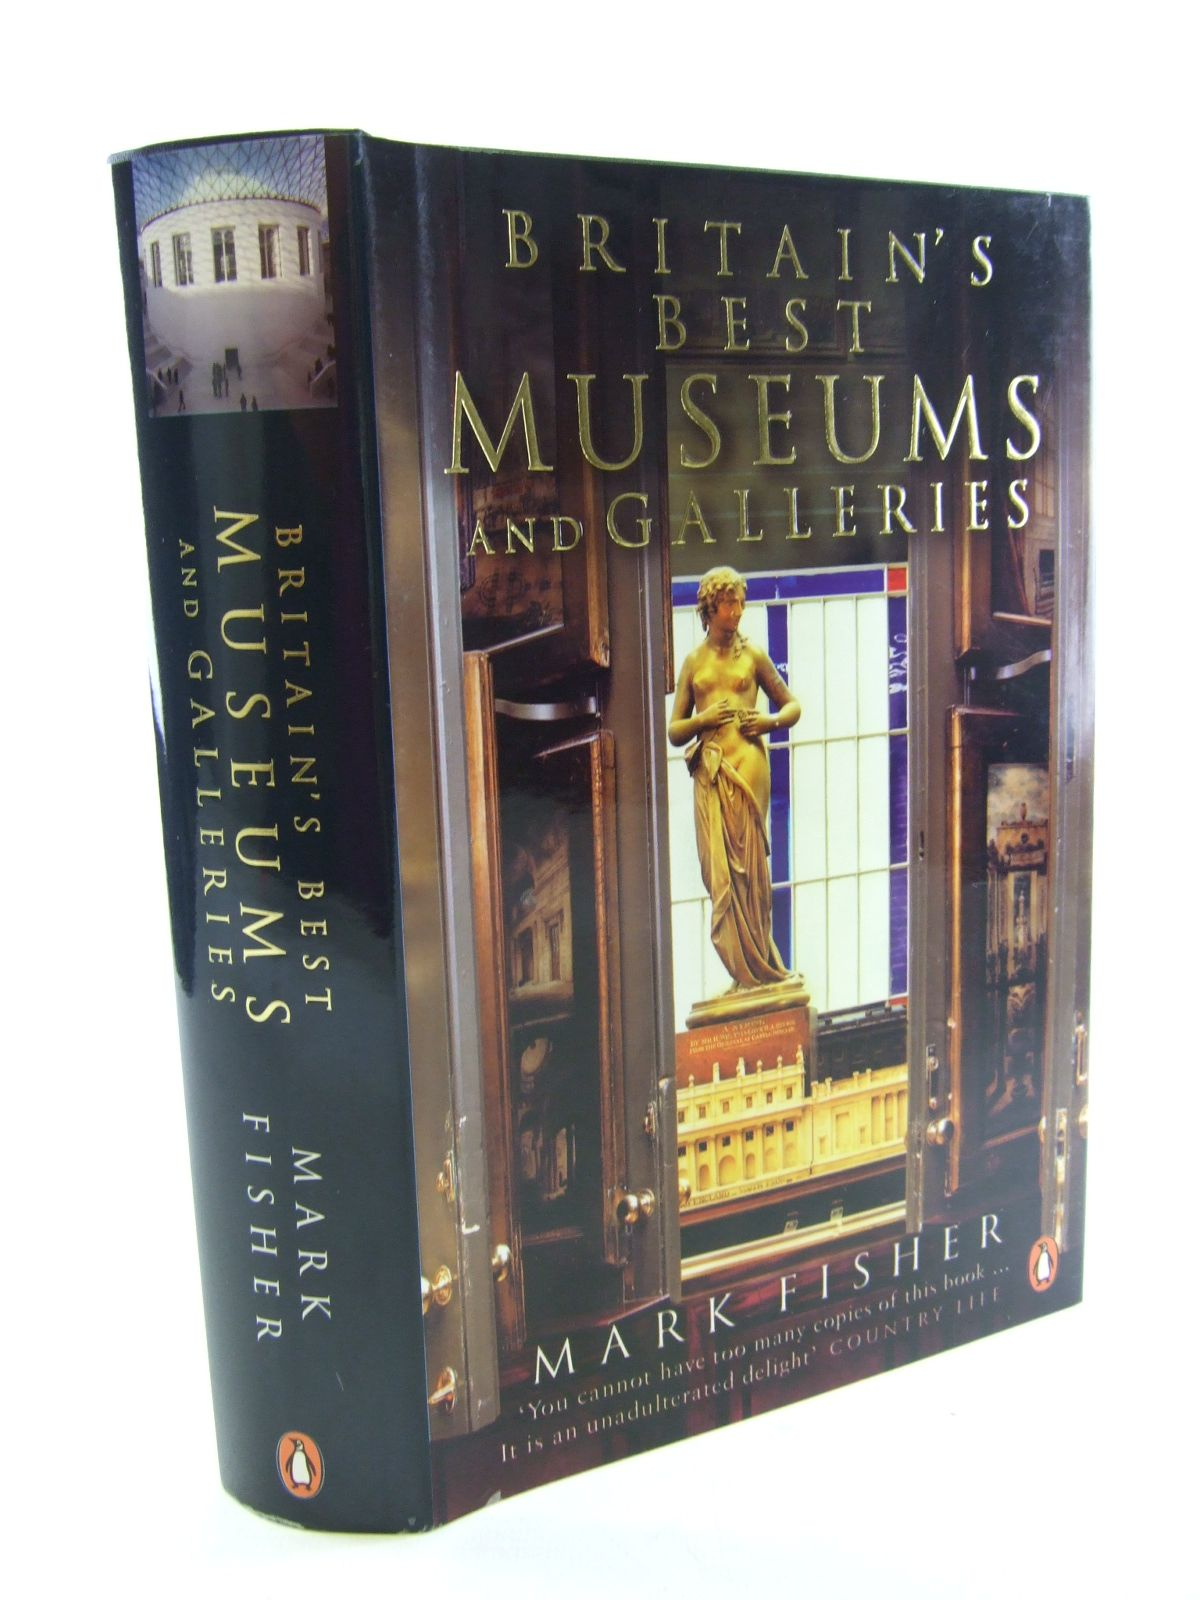 Photo of BRITAIN'S BEST MUSEUMS AND GALLERIES written by Fisher, Mark published by Allen Lane (STOCK CODE: 1805732)  for sale by Stella & Rose's Books